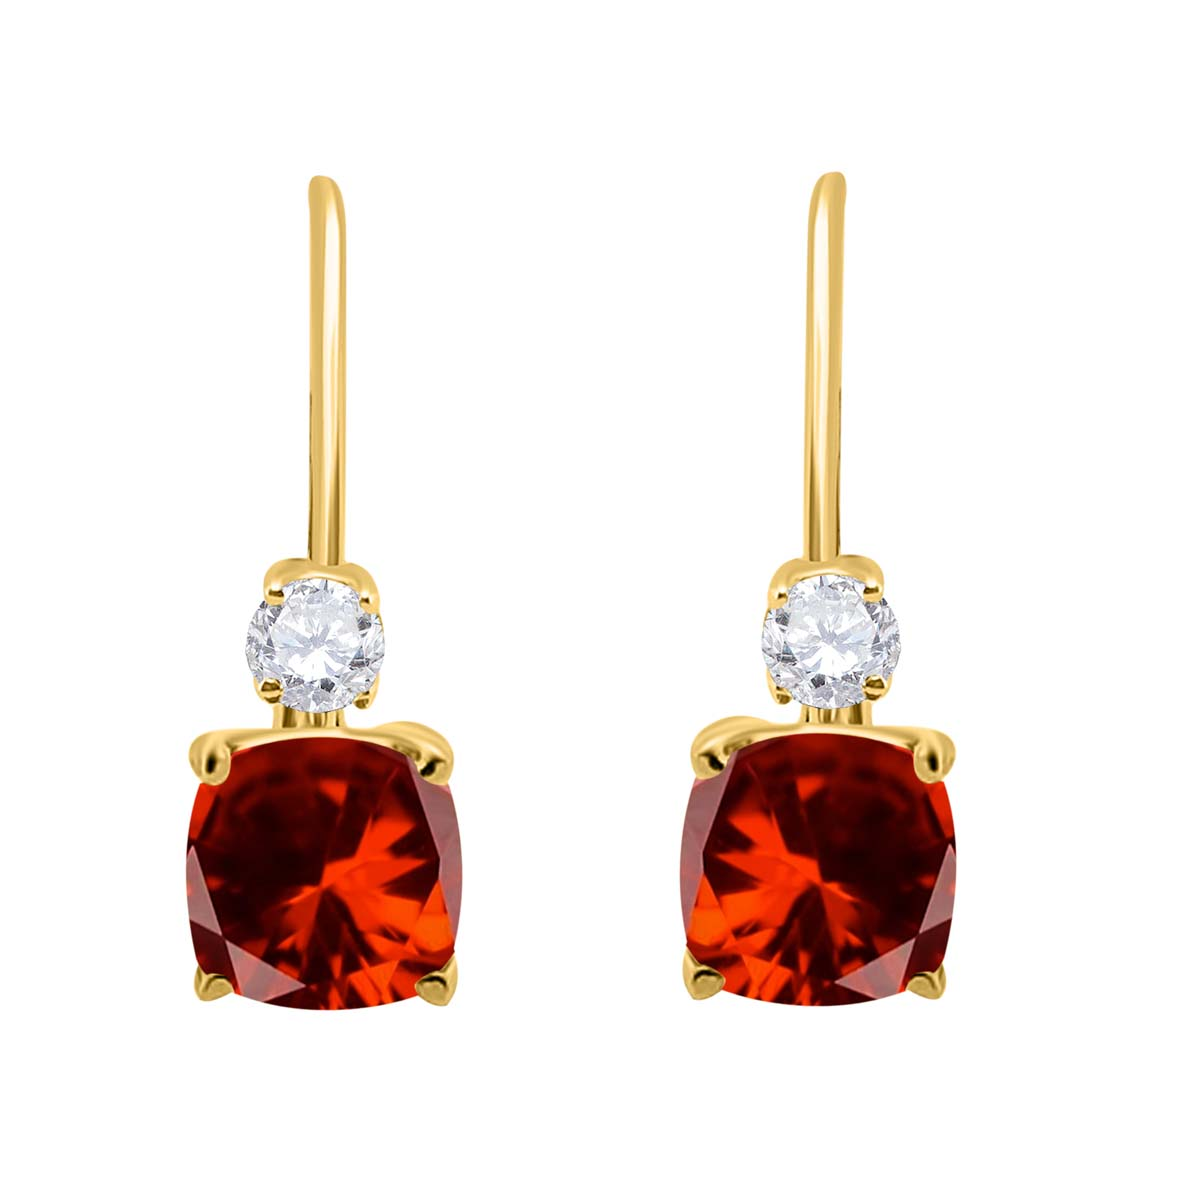 2.65 Carat. Cushion Cut Gemstone And Diamond Leverback Earrings sets for girls or Women Garnet 14K Yellow Gold 4 Prong-Setting Cushion adultsthis is the lovely gift for anniversary